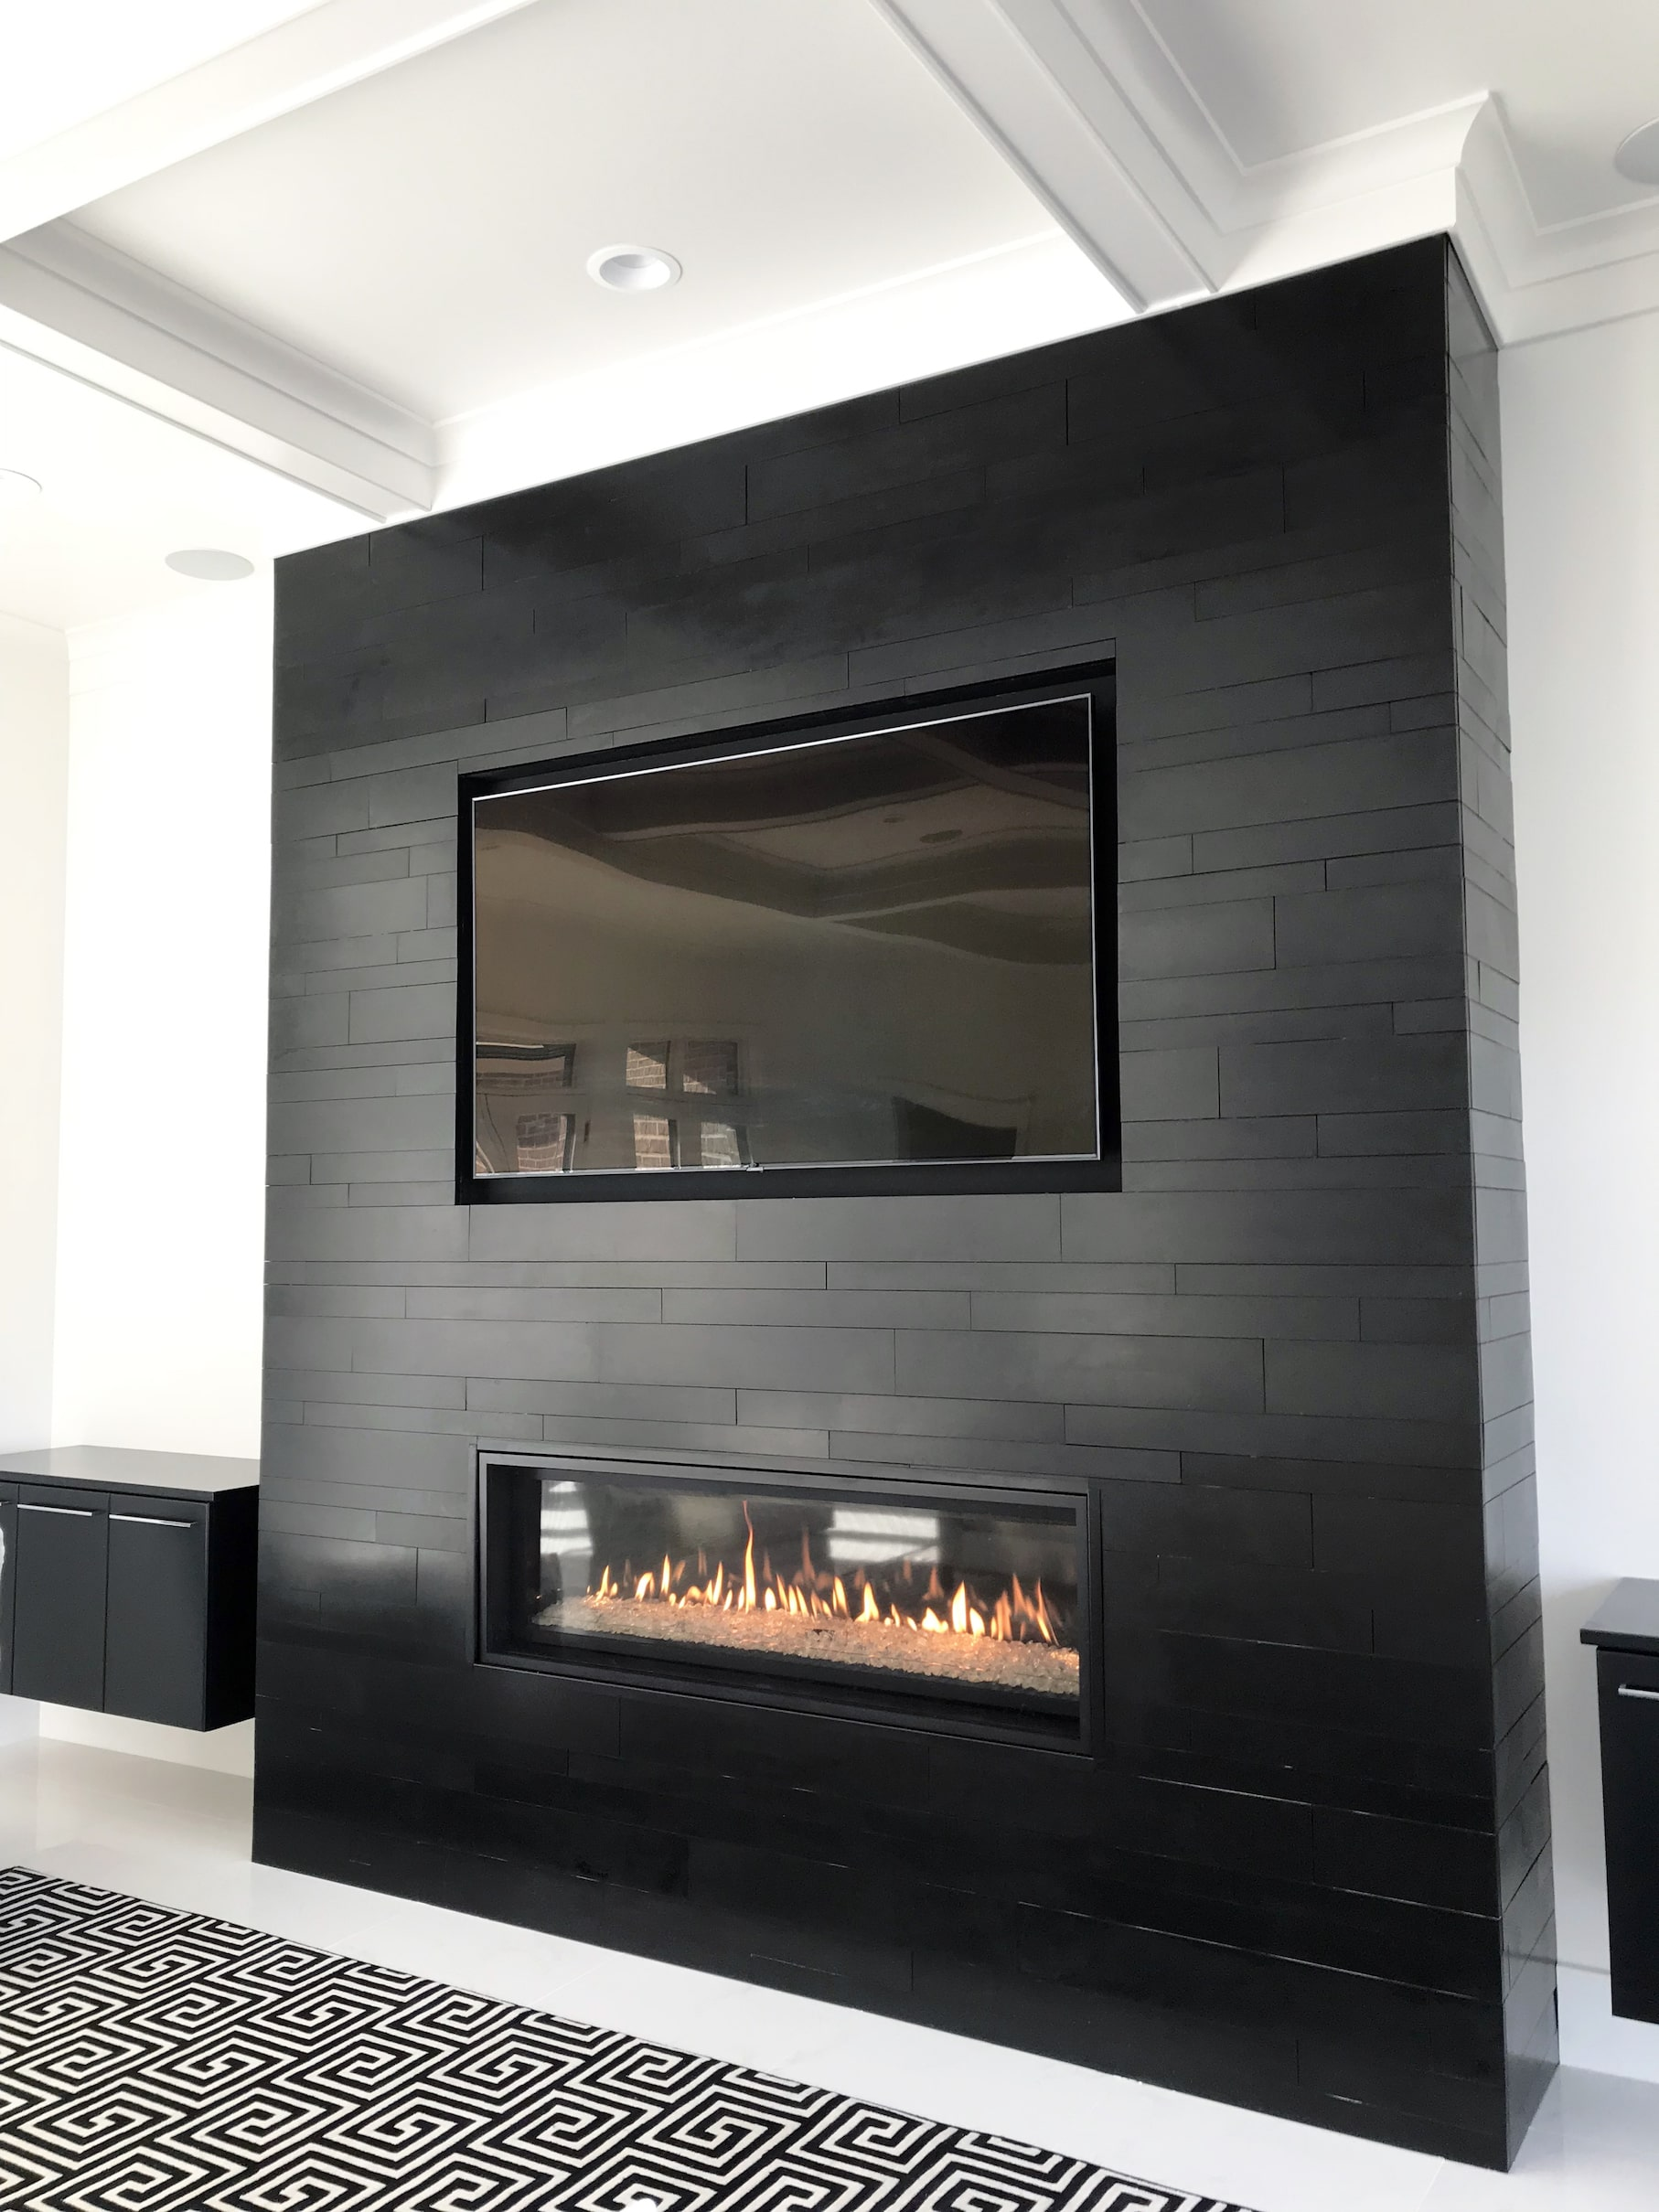 Norstone Planc Large Format Tiles in Ebony installed on a modern fireplace with outside corners